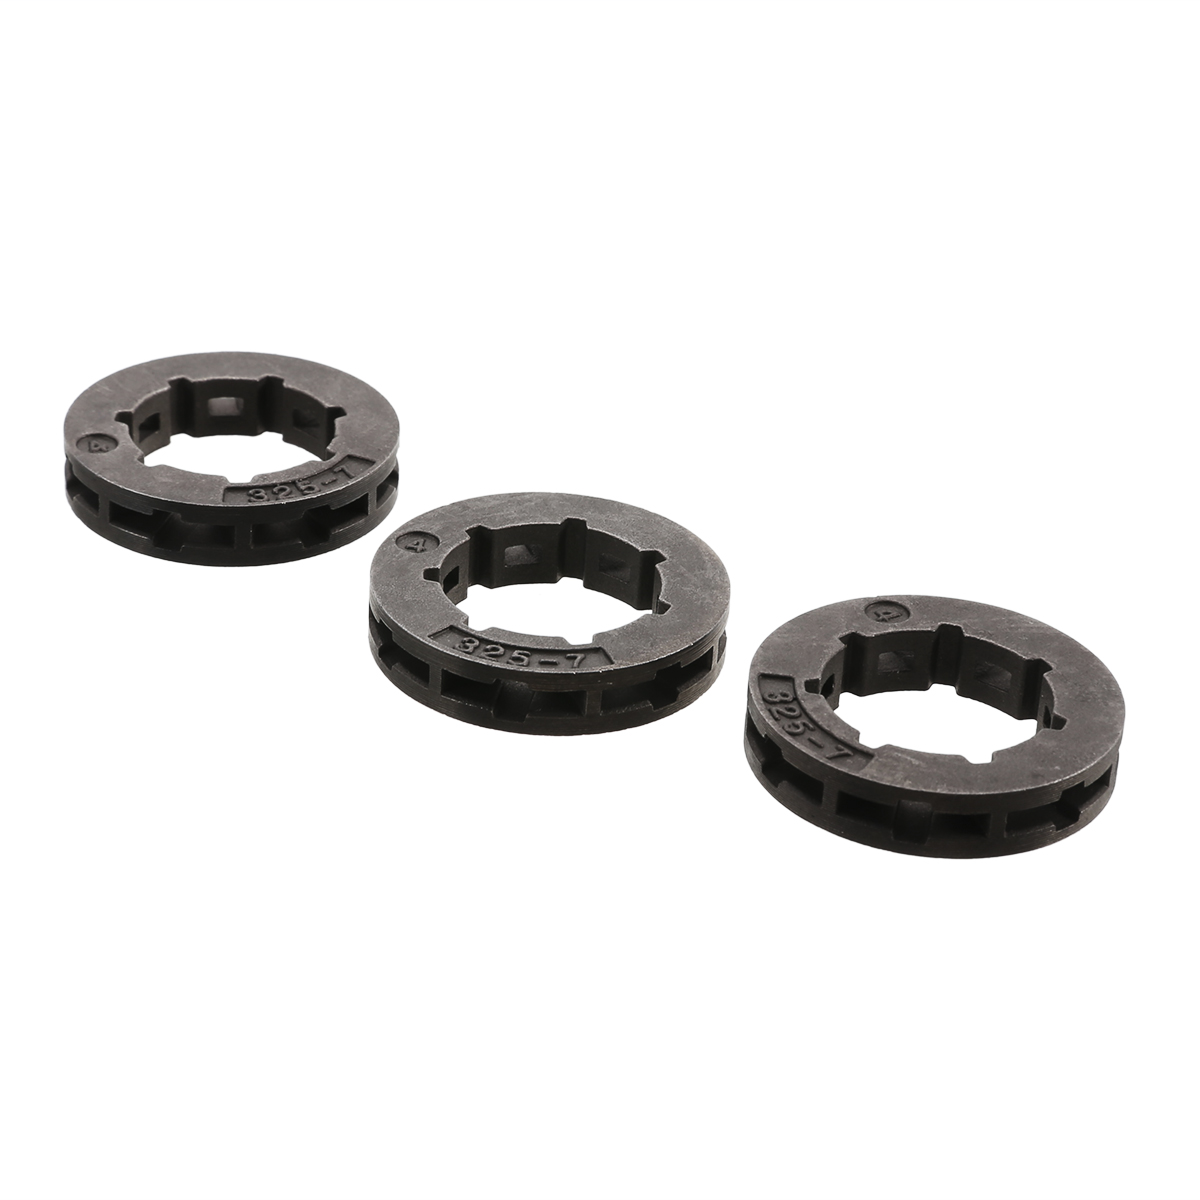 3pcs Tool Parts Metal Chainsaw Spare Part Chain Saw Sprocket Rim Power Mate 325-7 For Chainsaw Replacement